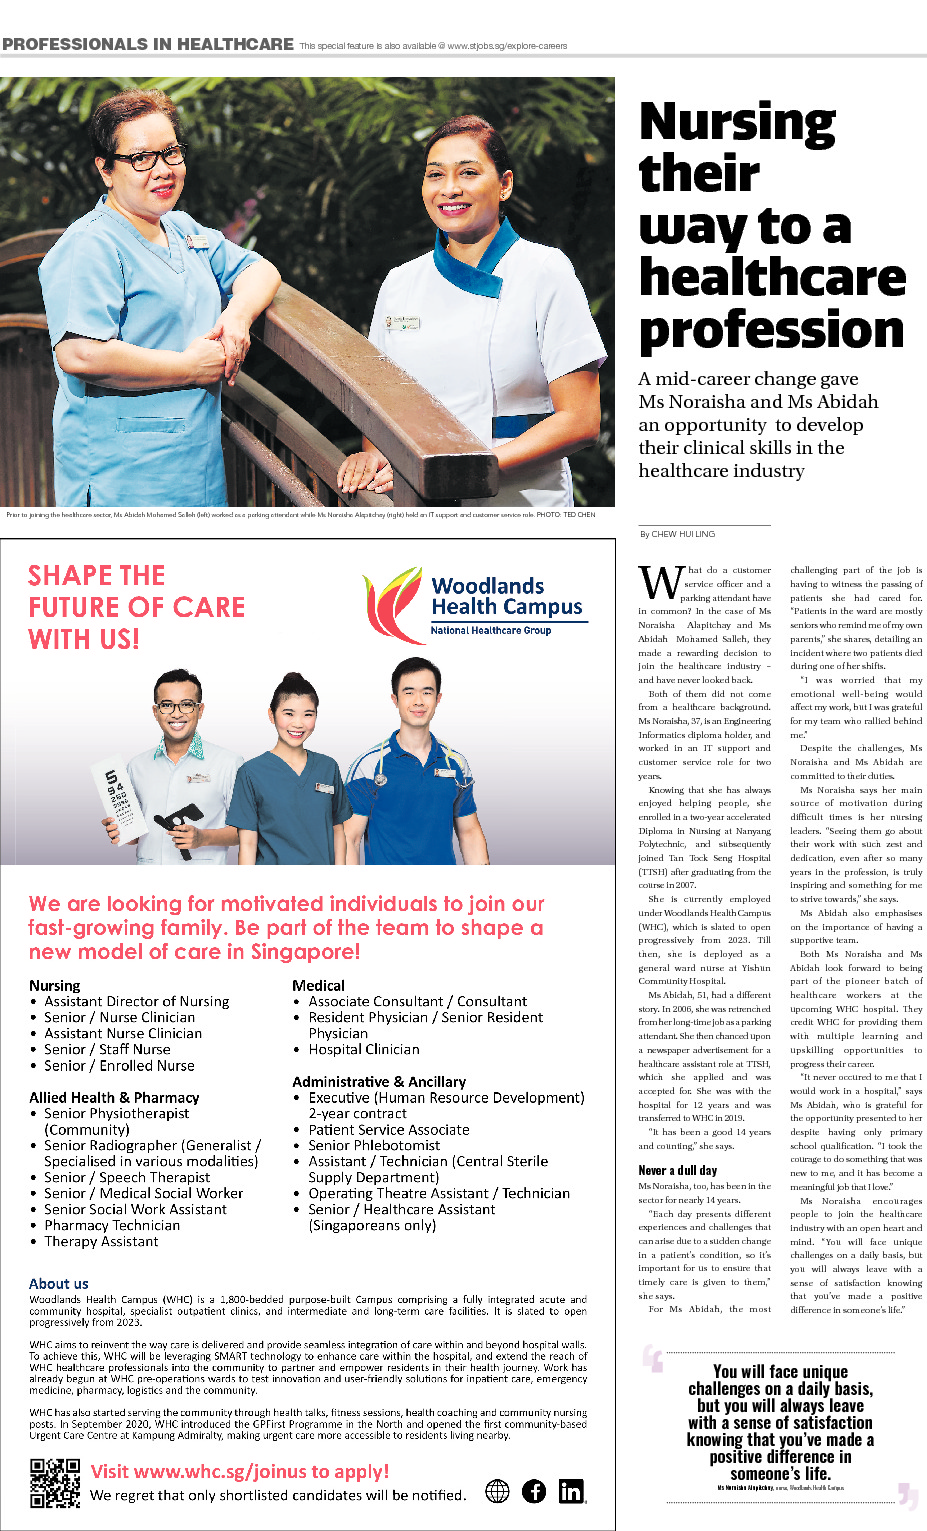 SHAPE THE FUTURE OF CARE WITH US